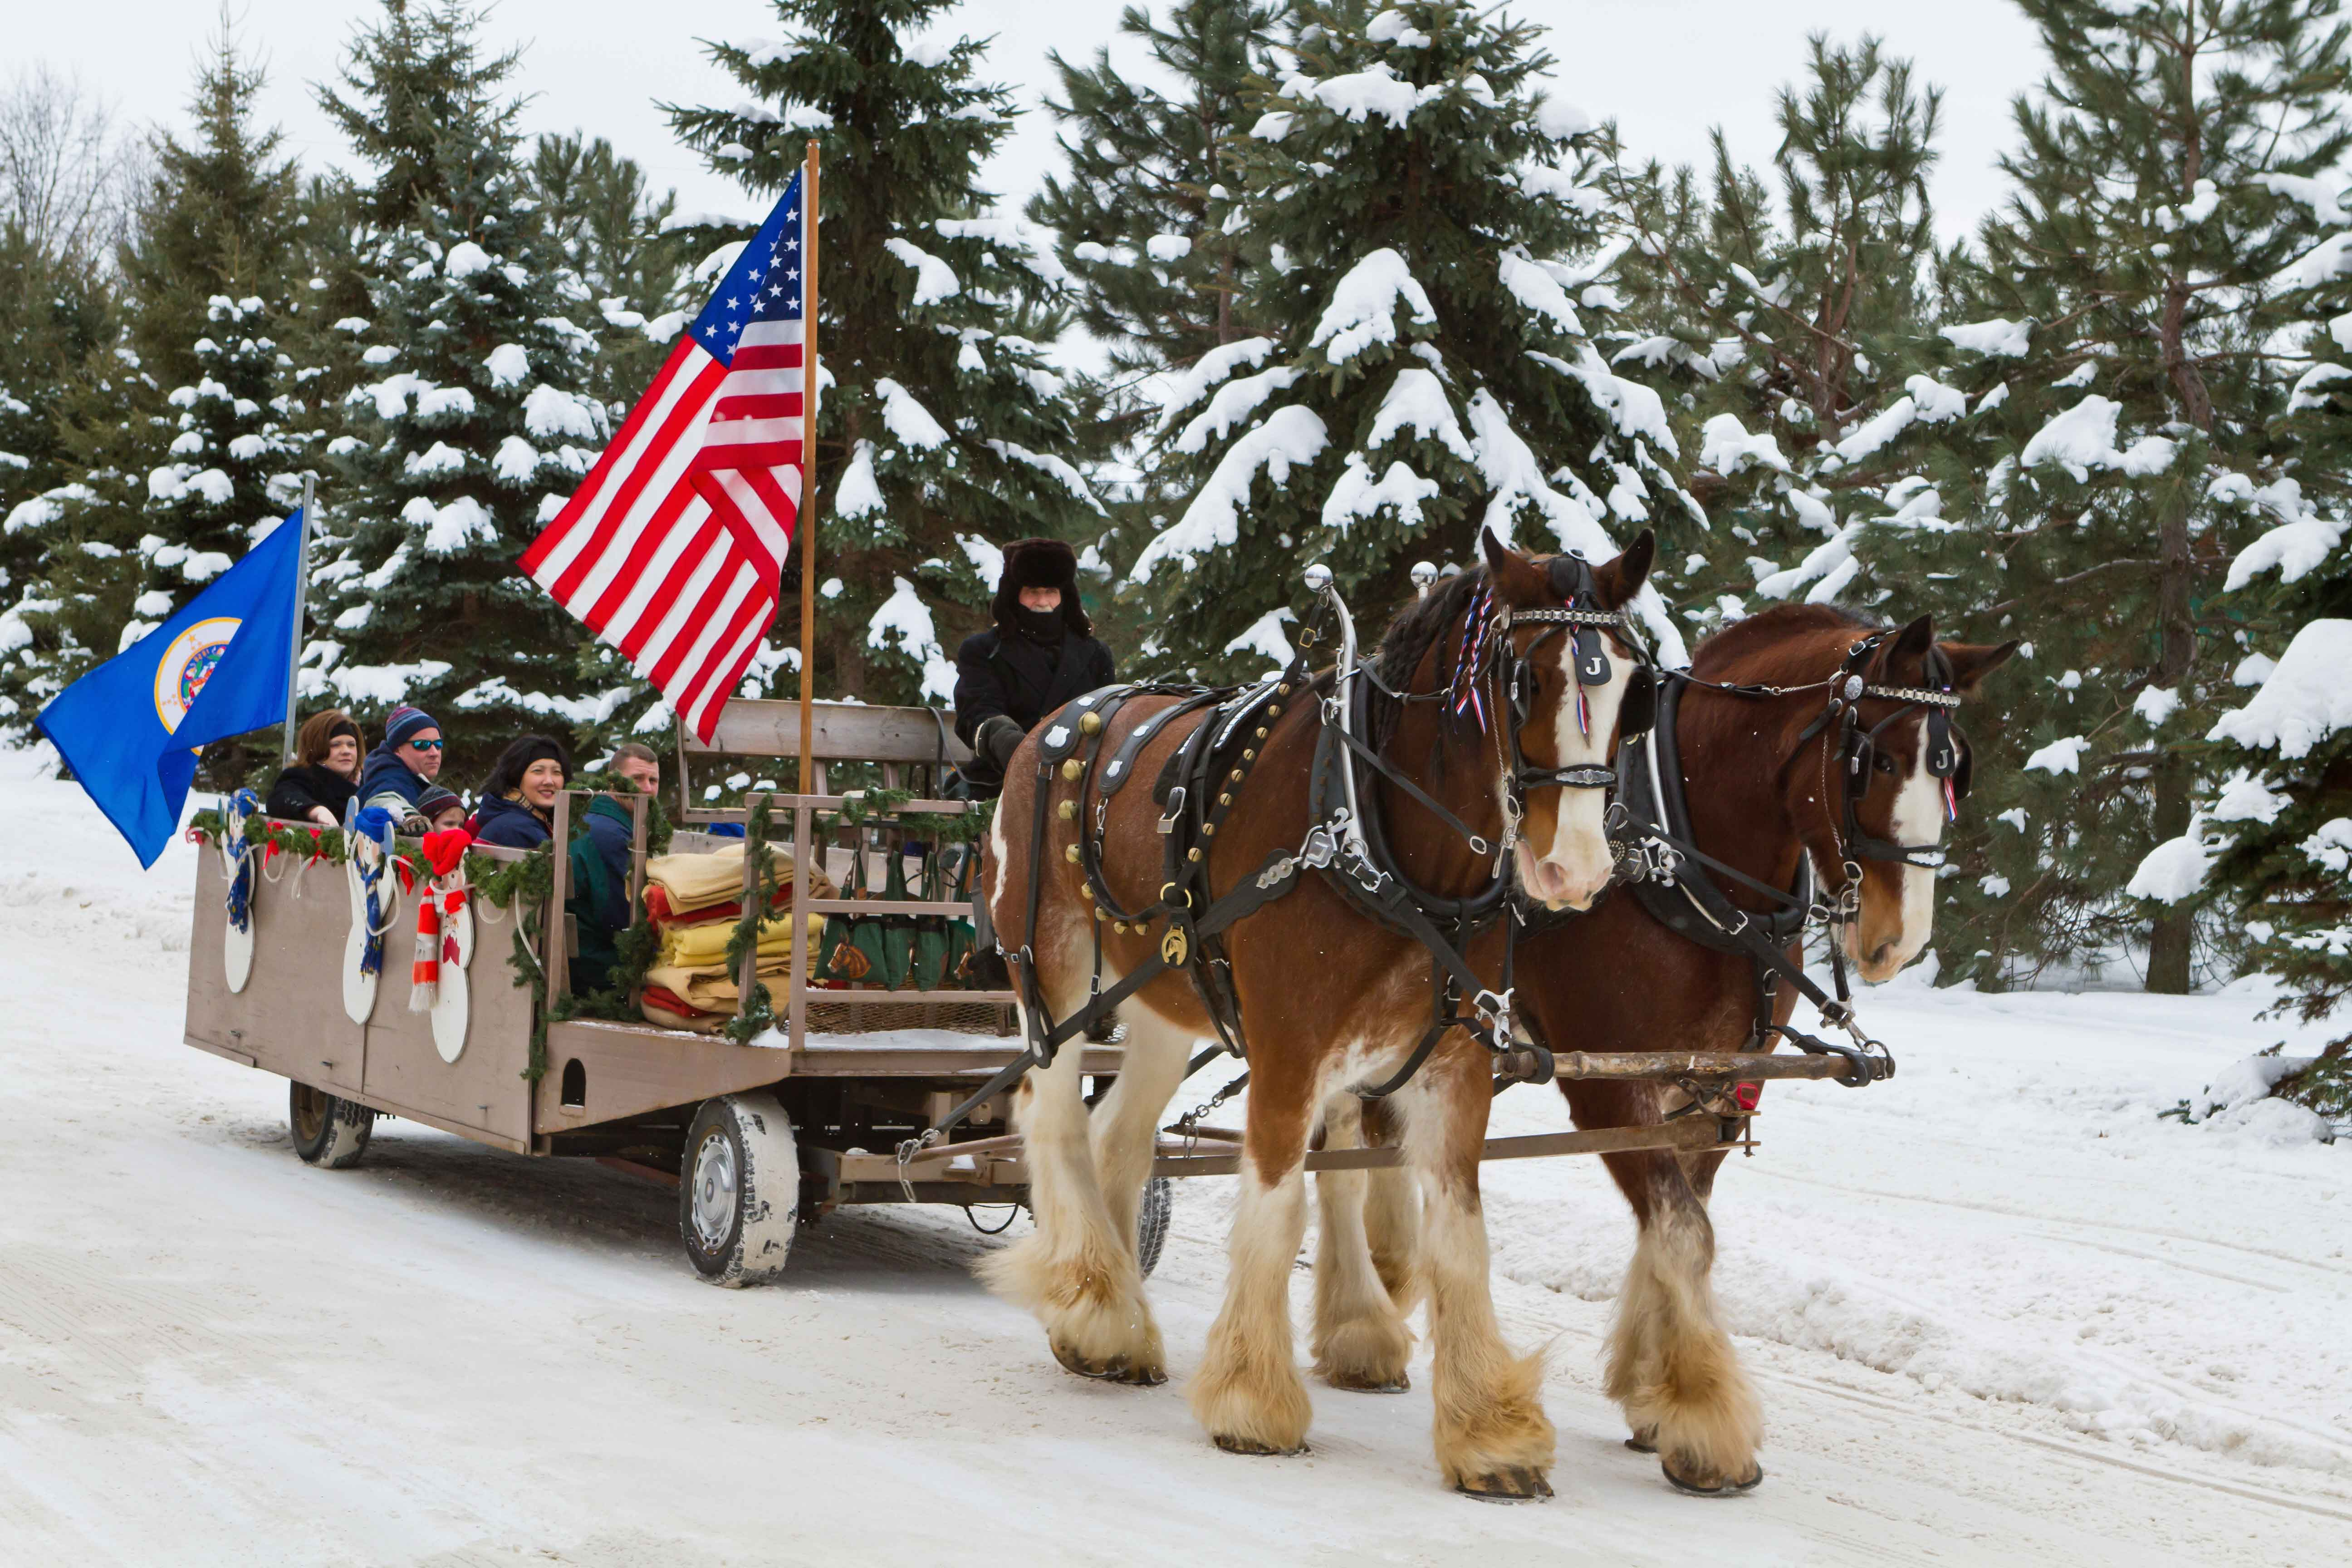 Horse drawn trolley rides in Brainerd